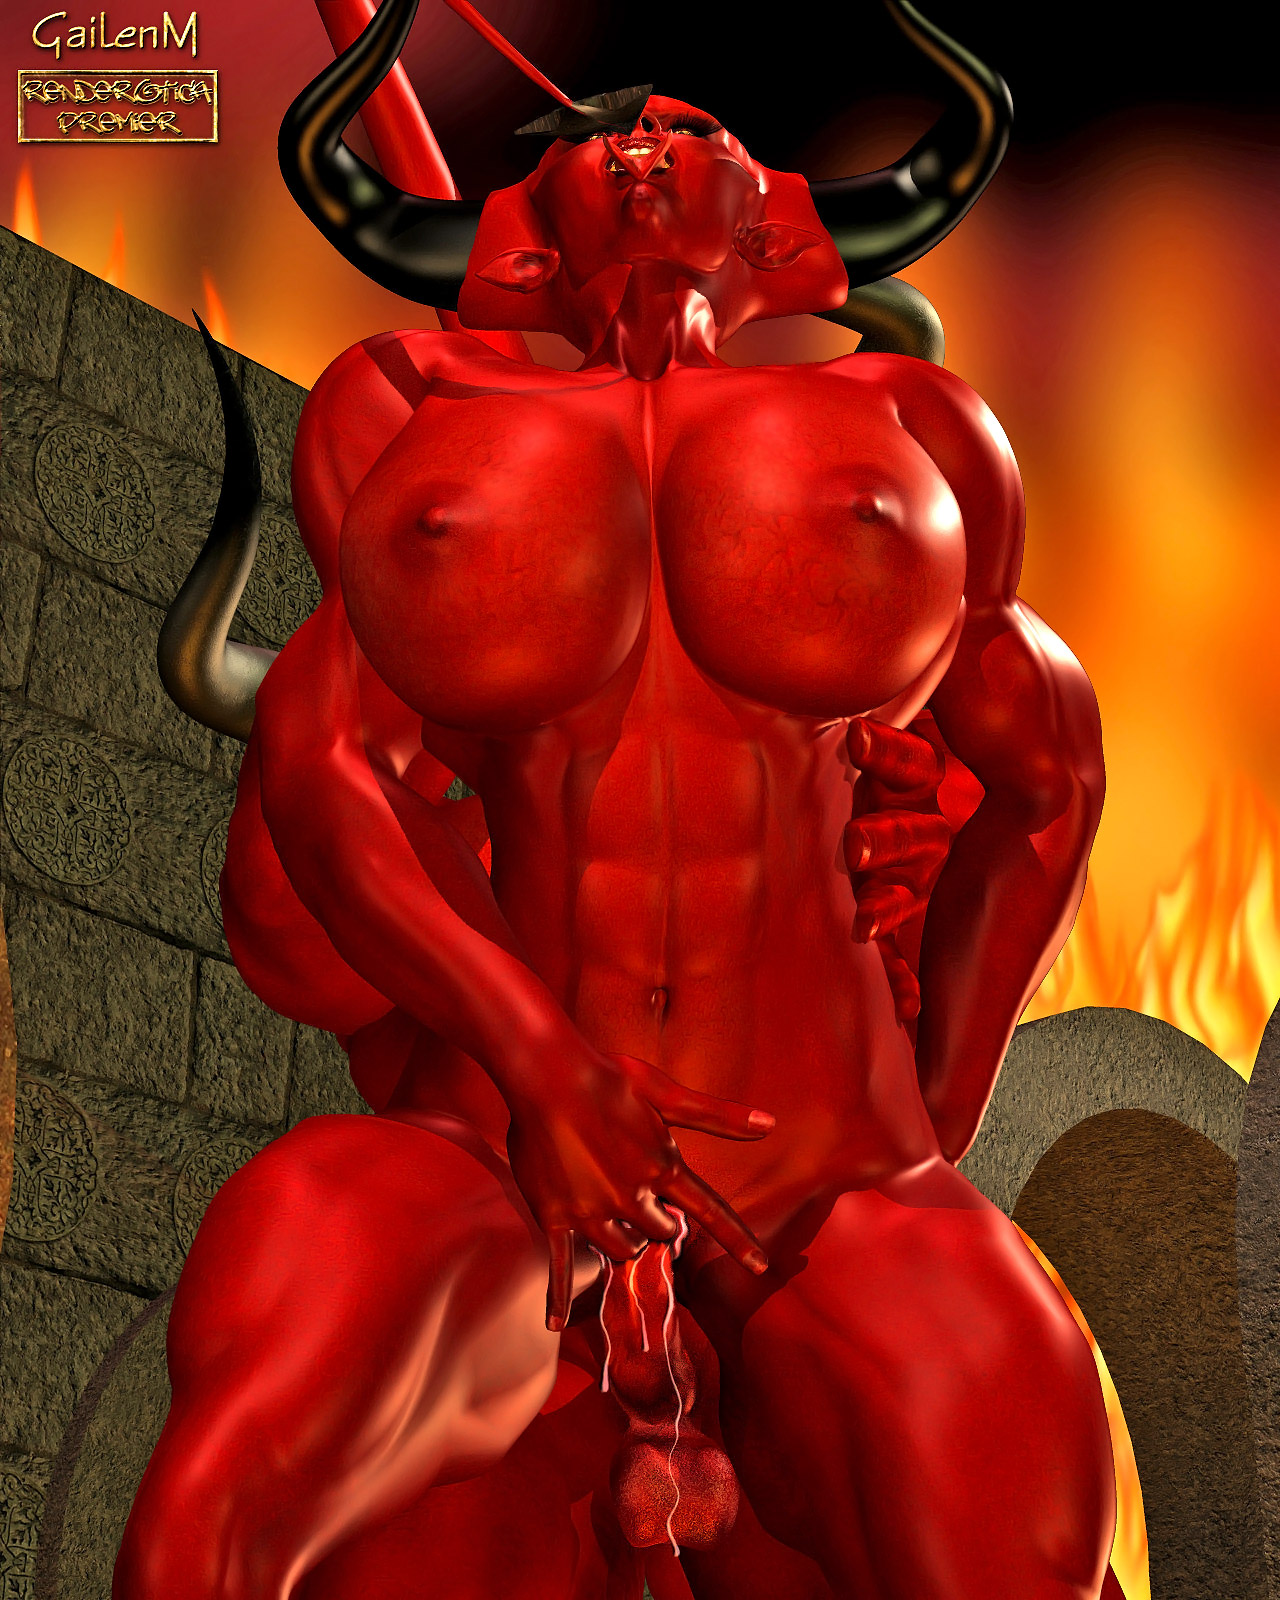 Hot demon girl sex video smut pictures